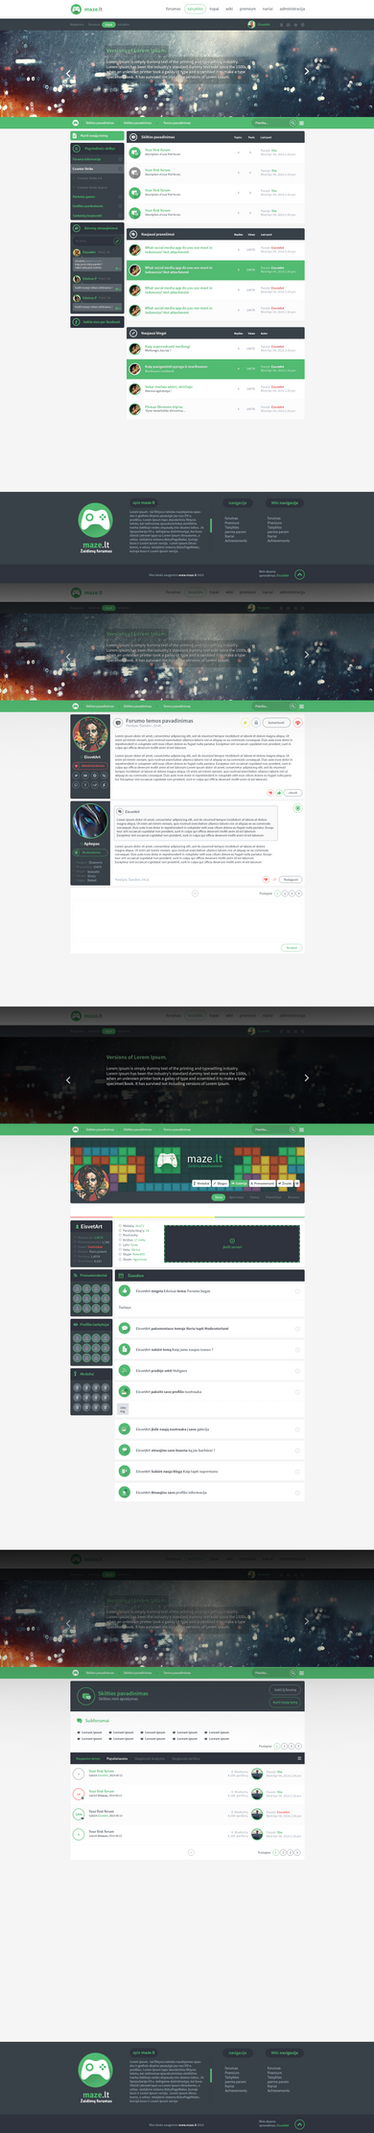 Maze.lt Web design by iEimiz